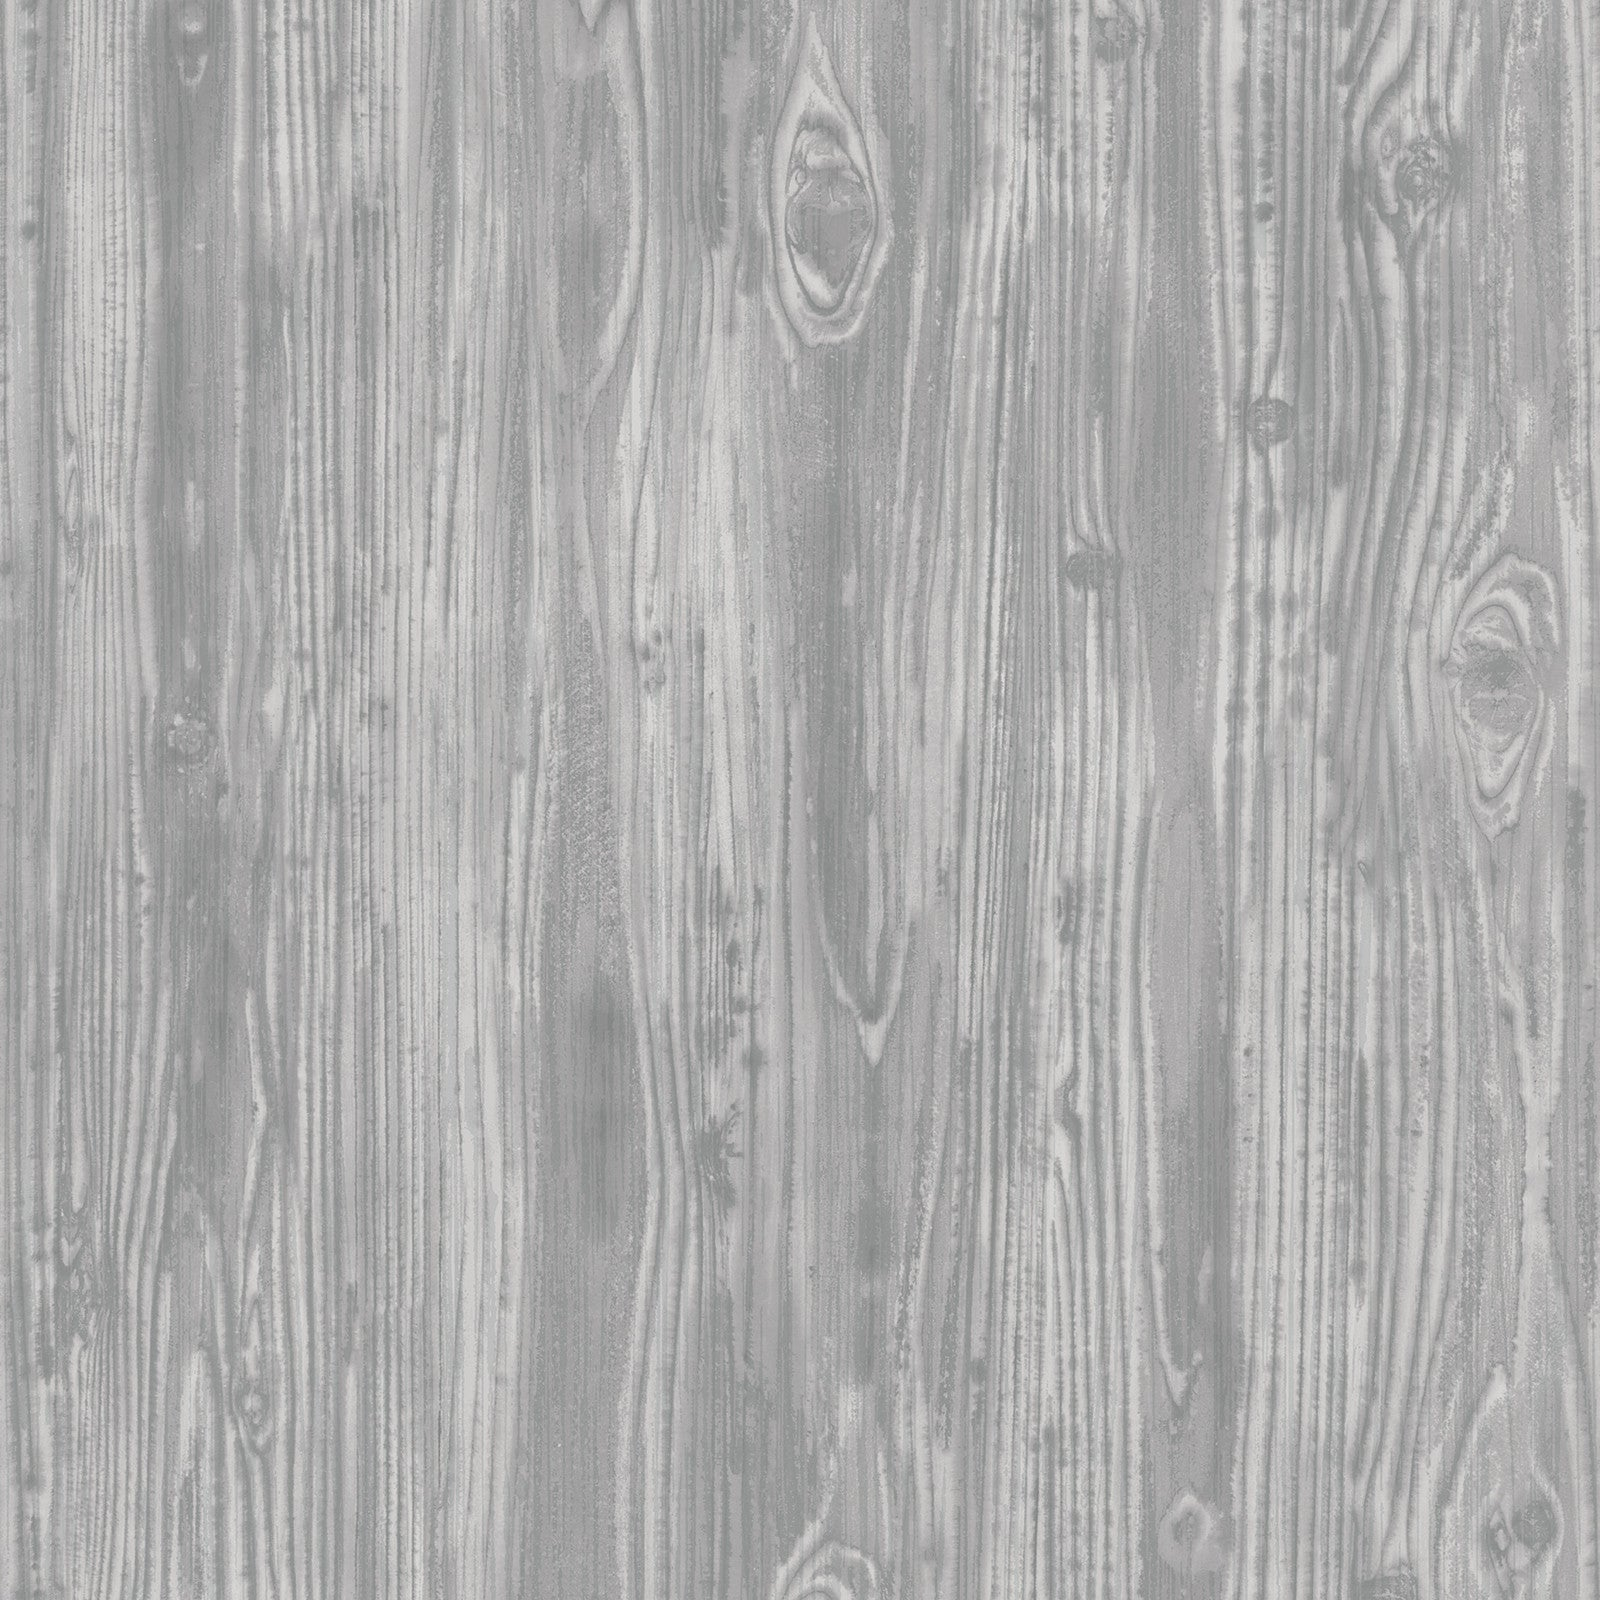 Woodgrain Textured Self Adhesive Wallpaper In Pewter